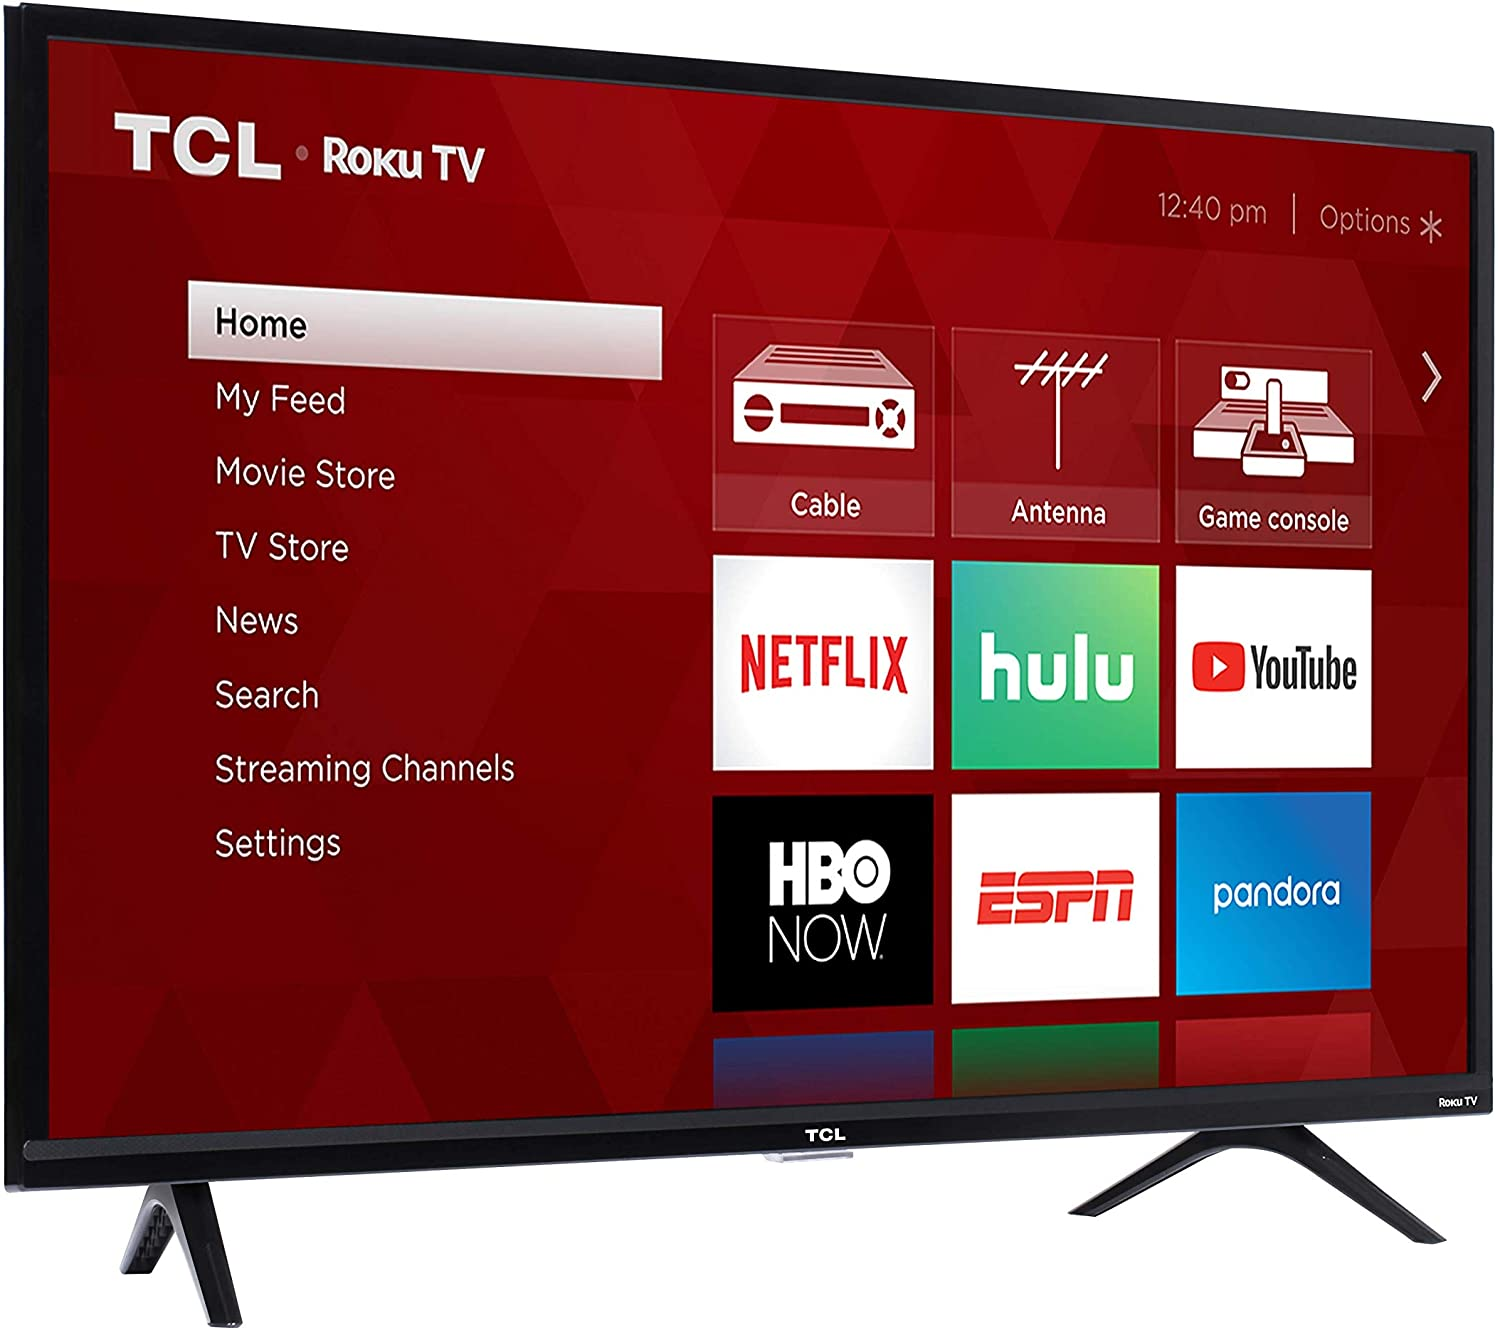 The TCL Roku Smart TV is a great alternative to a computer monitor.